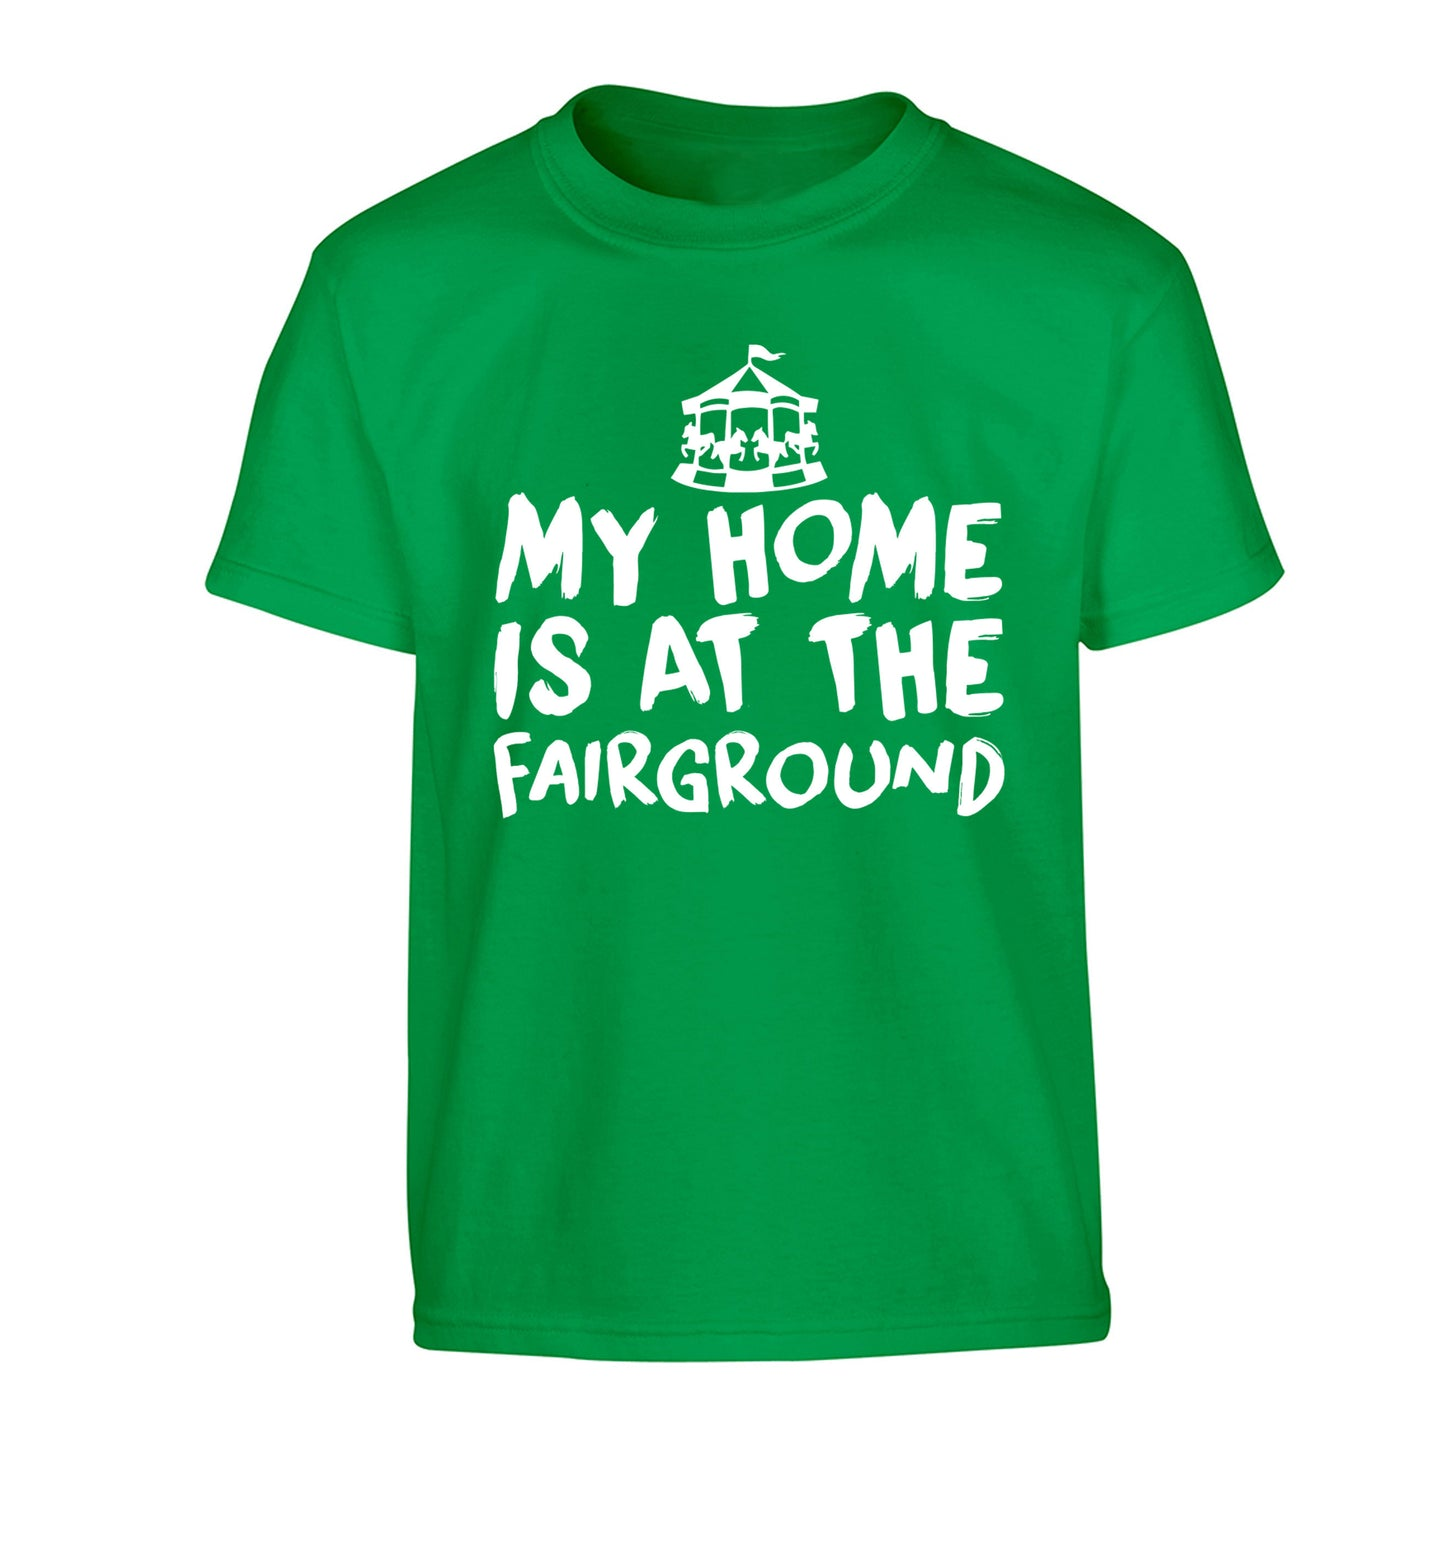 My home is at the fairground Children's green Tshirt 12-14 Years